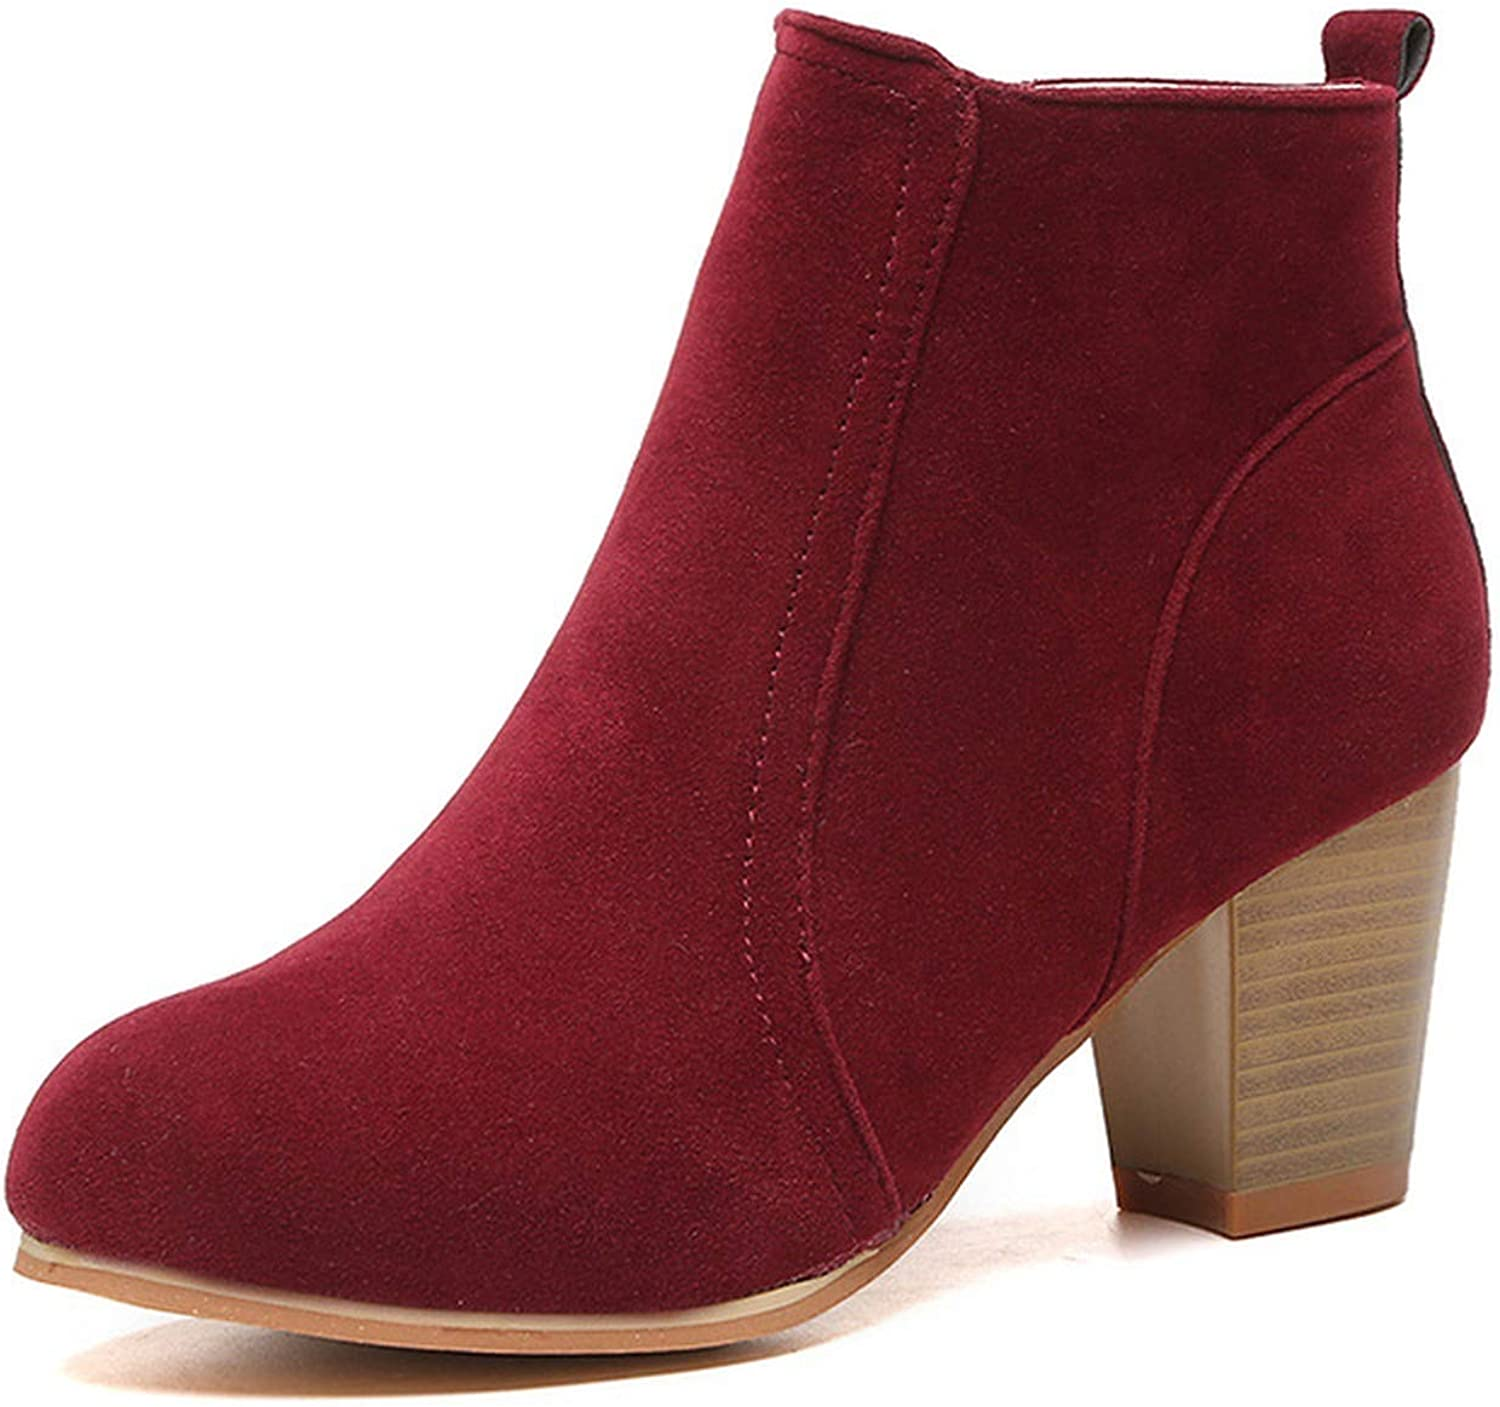 Women Boots European Ladies shoes PU Leather Fashion Boots